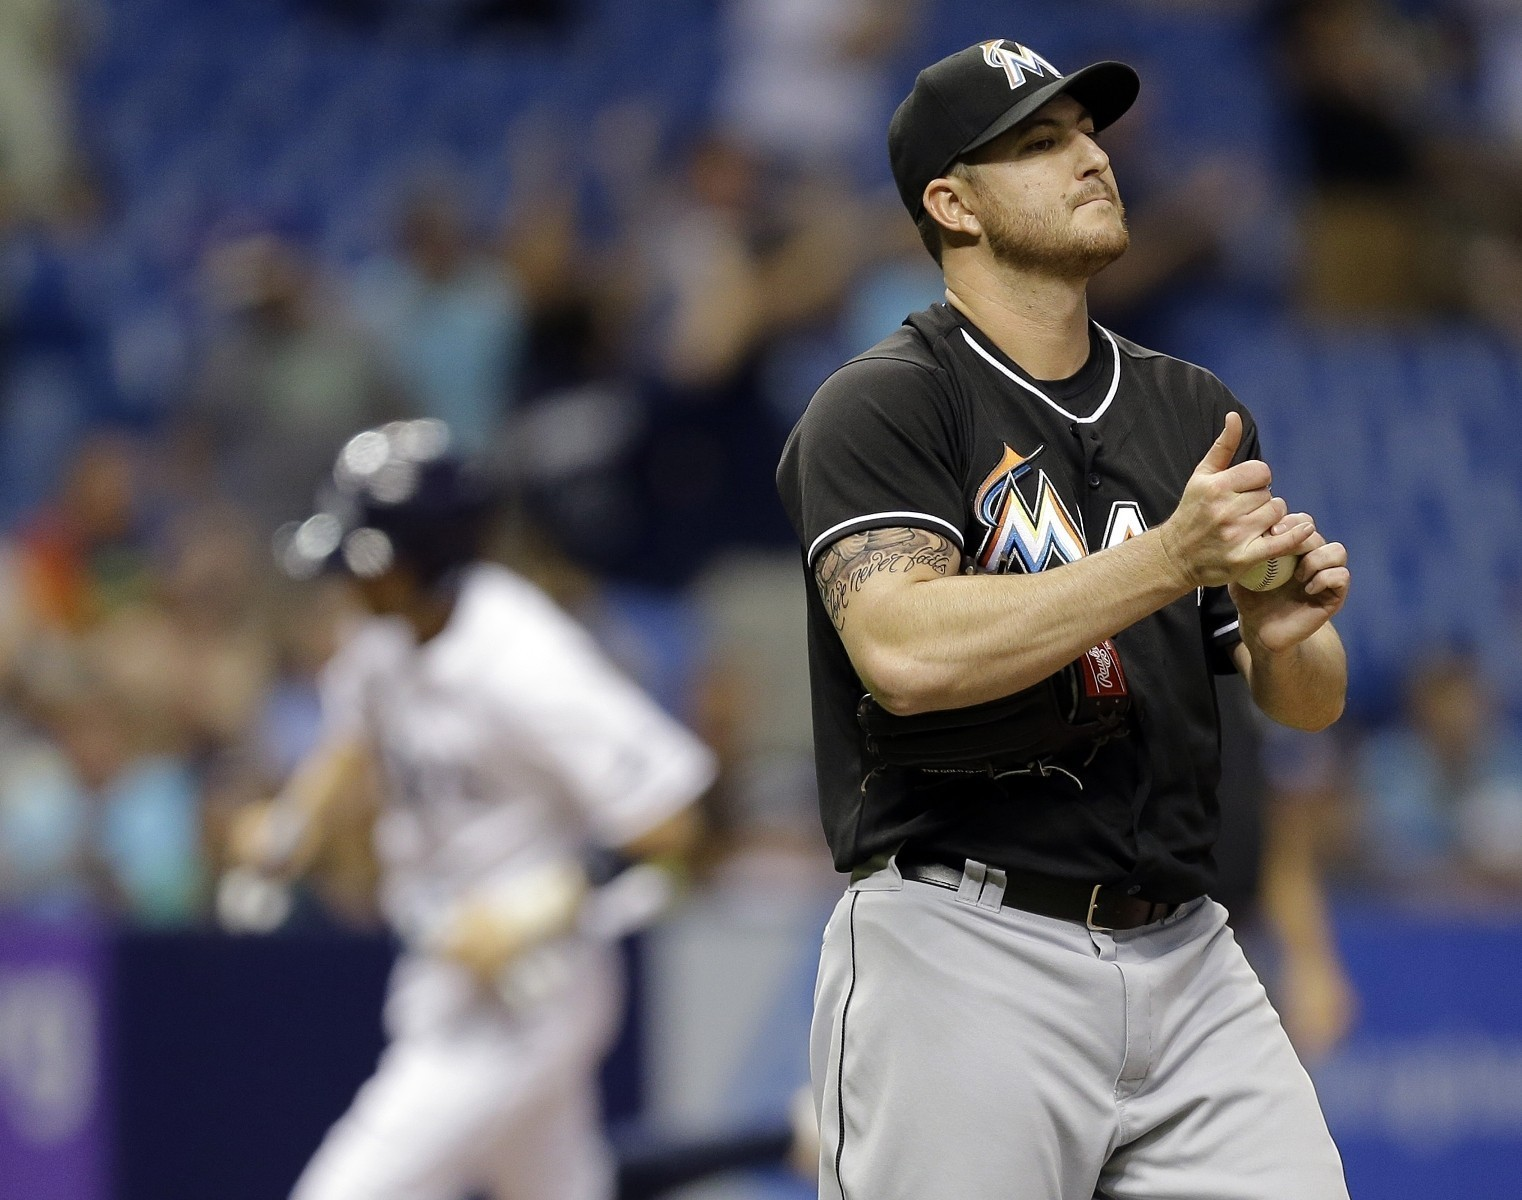 Fl-marlins-news-0527-20160526